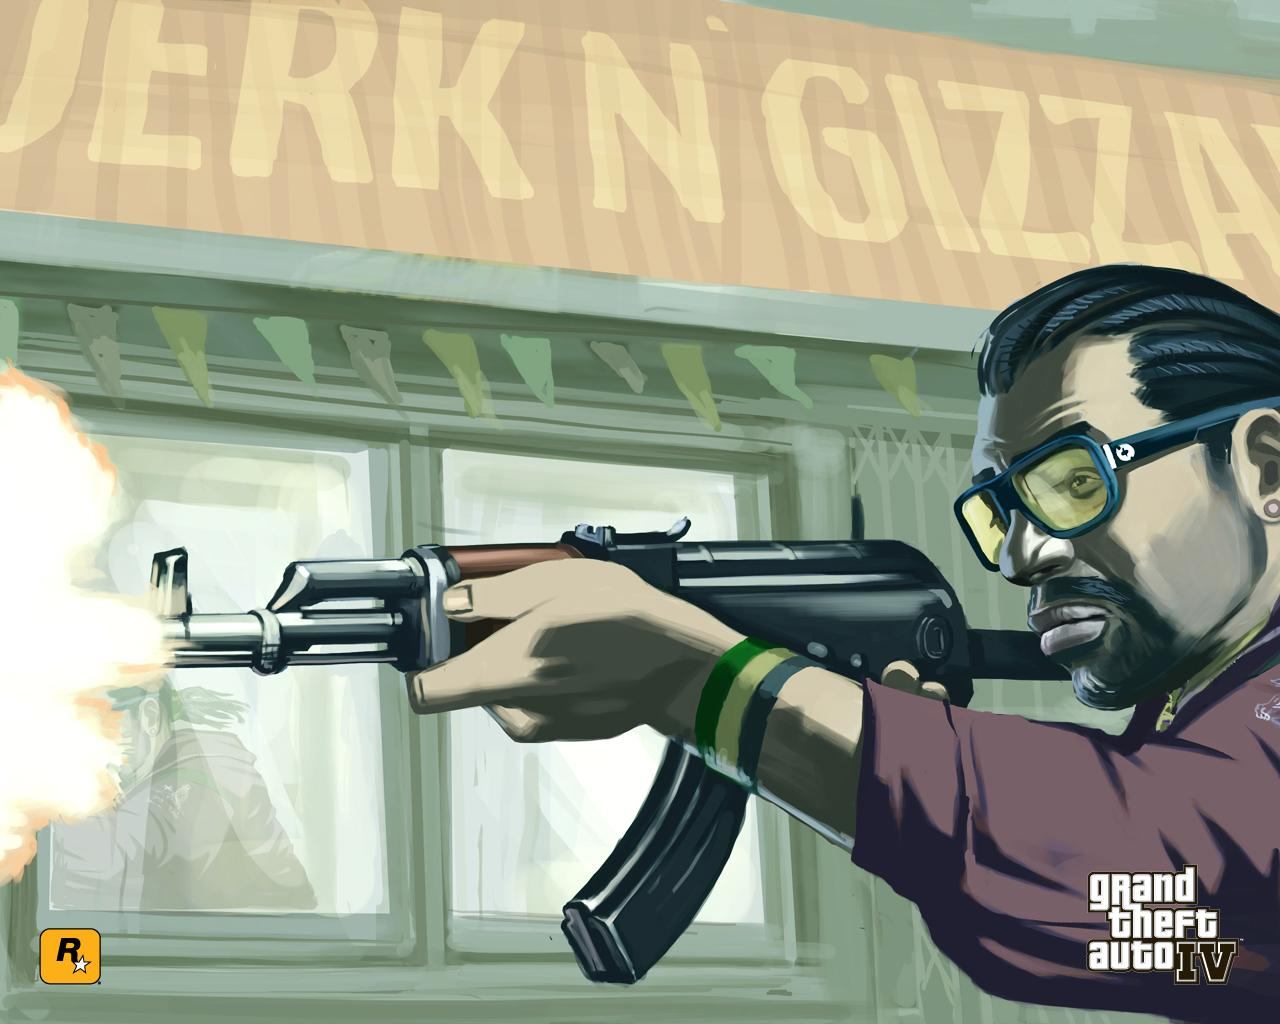 Grand Theft Auto IV Wallpapers   GameHipe 1280x1024